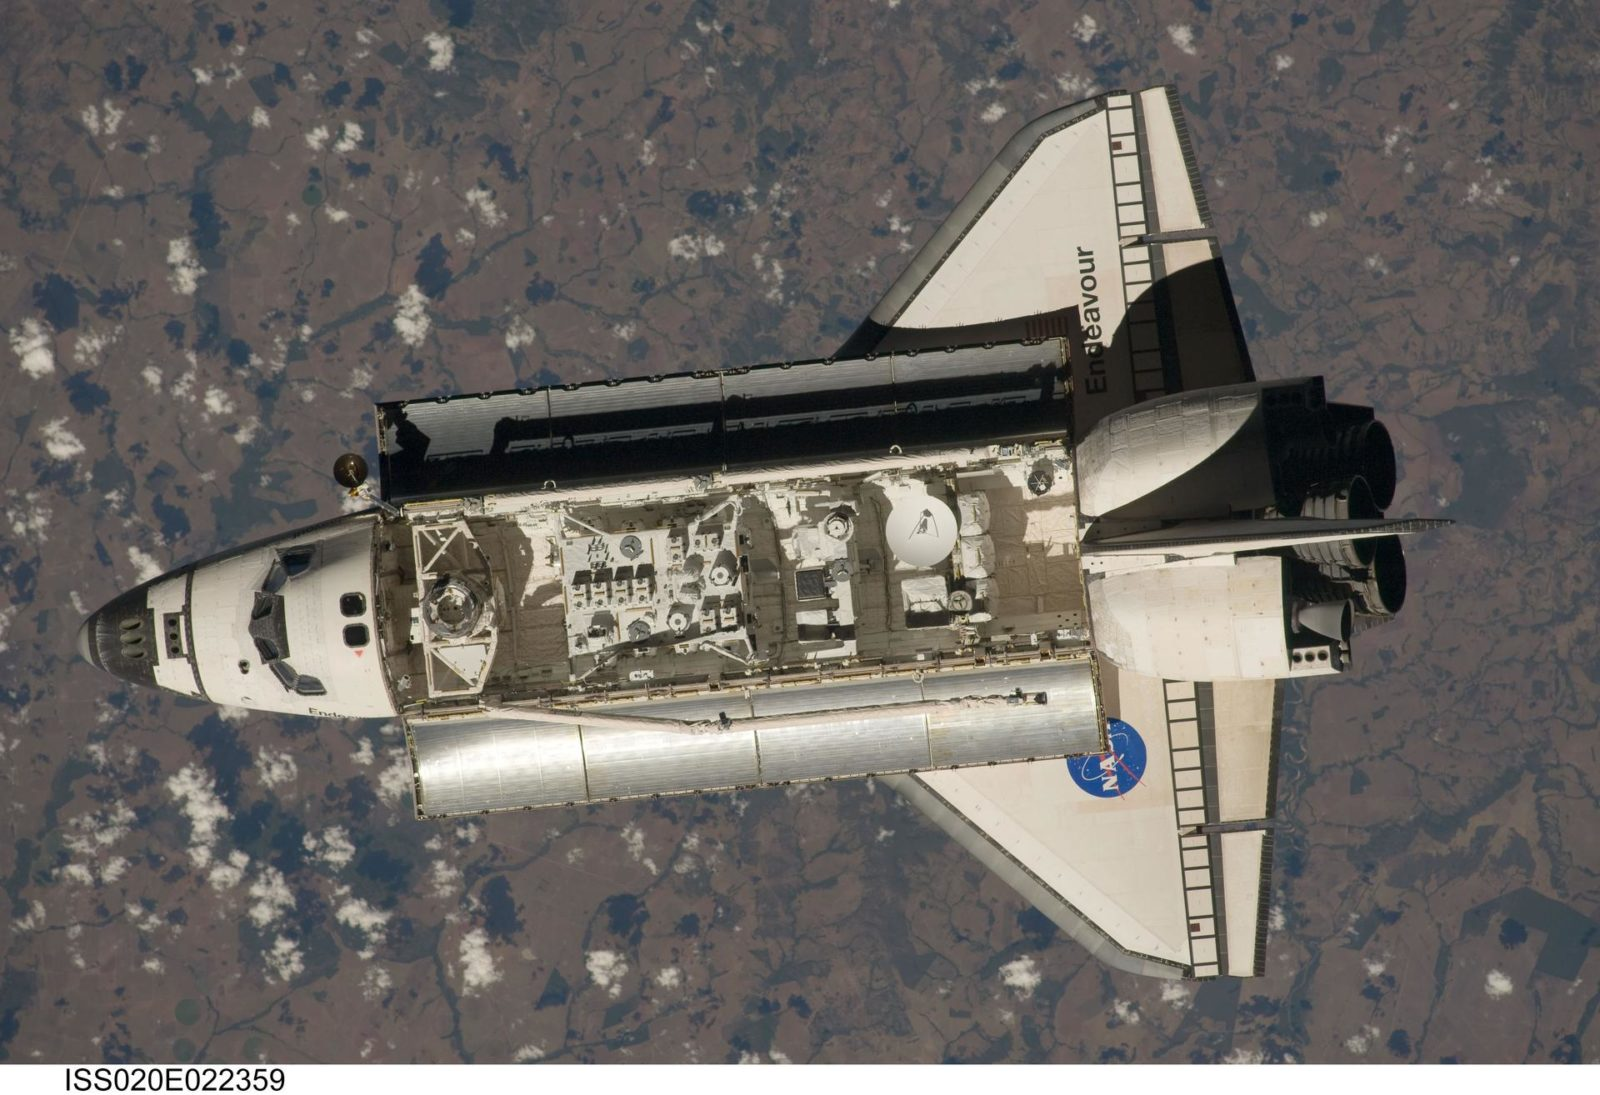 STS-127 approach to ISS